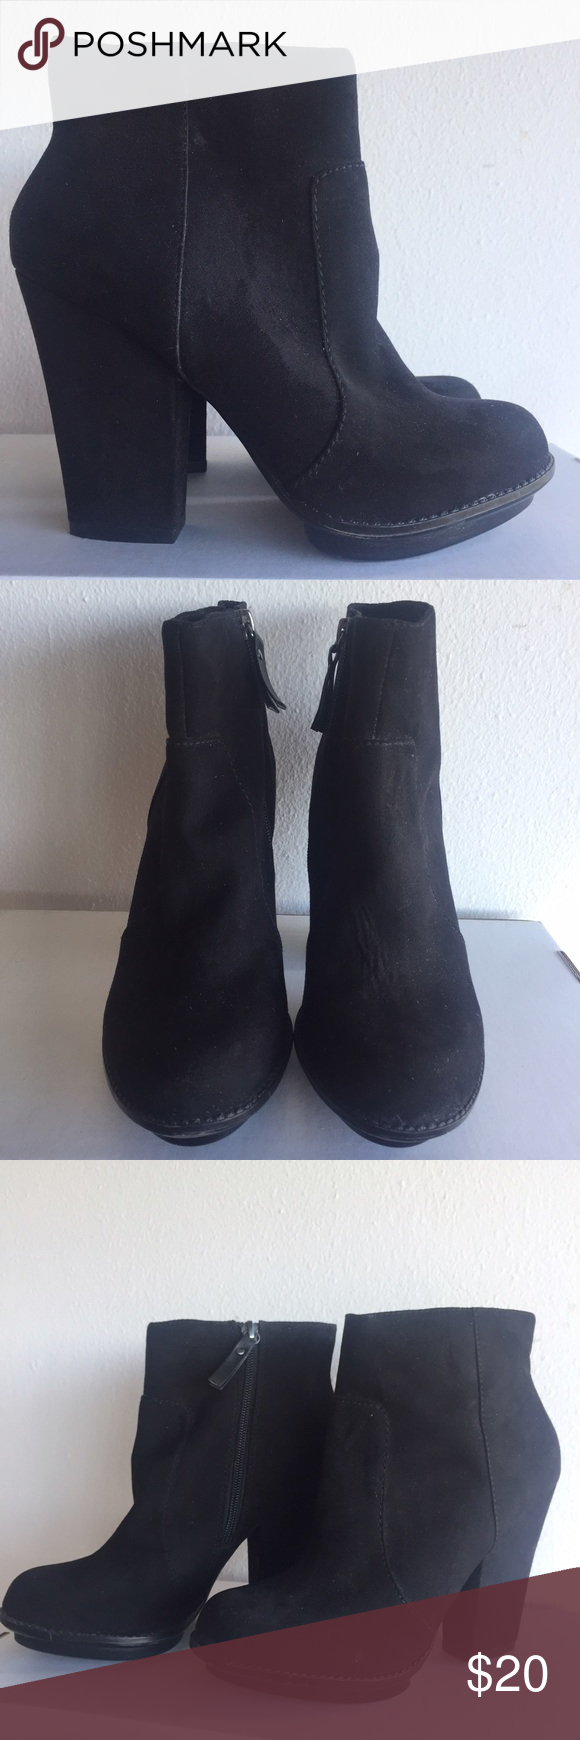 Zara Suede Booties Ankle booties from Zara. Never worn, looks like new! Comfy and chic for every type of weather. Size 39 (8 US), runs true to size. Zara Shoes Ankle Boots & Booties